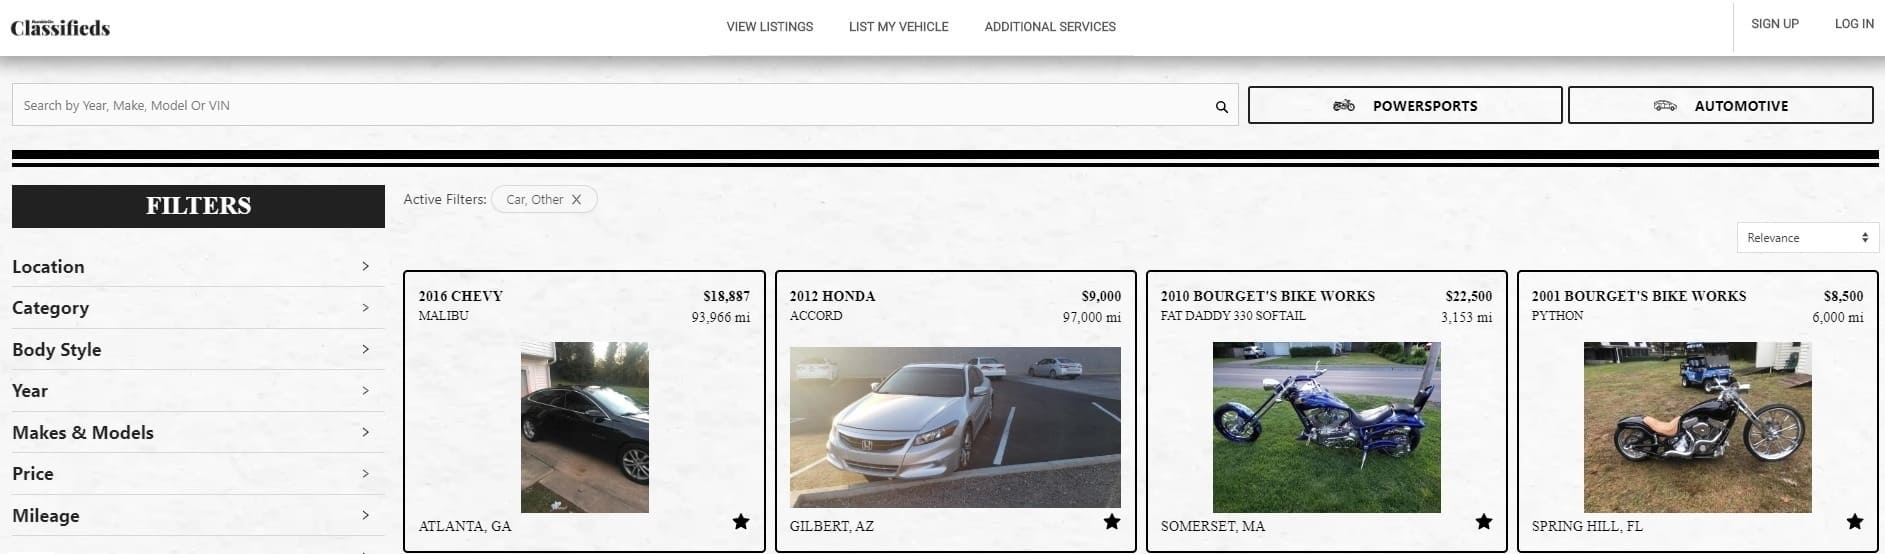 Browse Listings of Cars for Sale